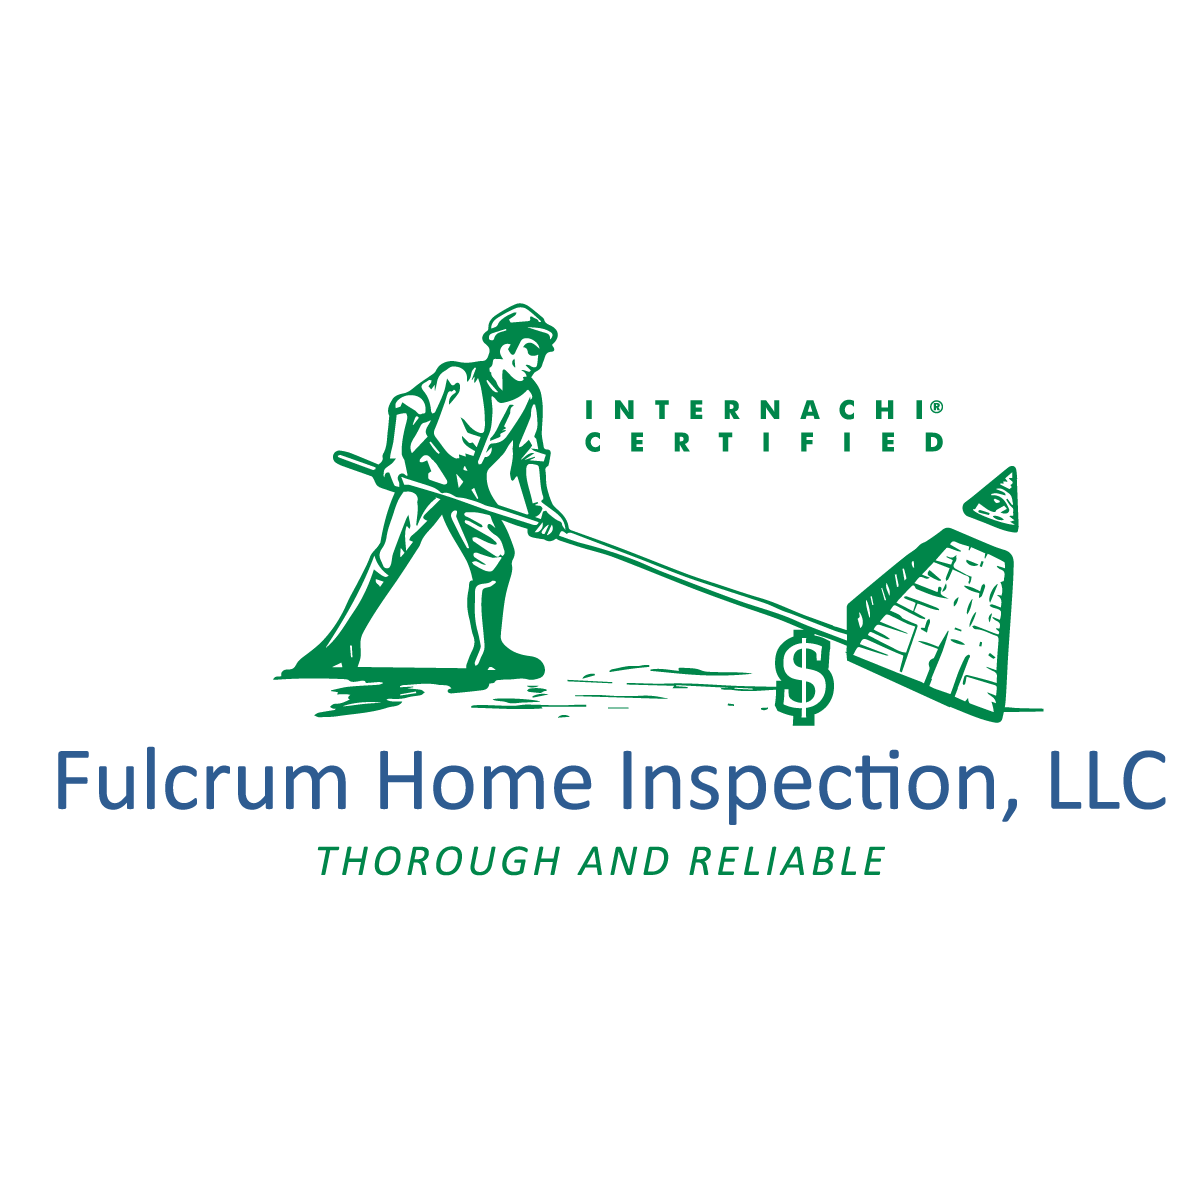 Fulcrum Home Inspection